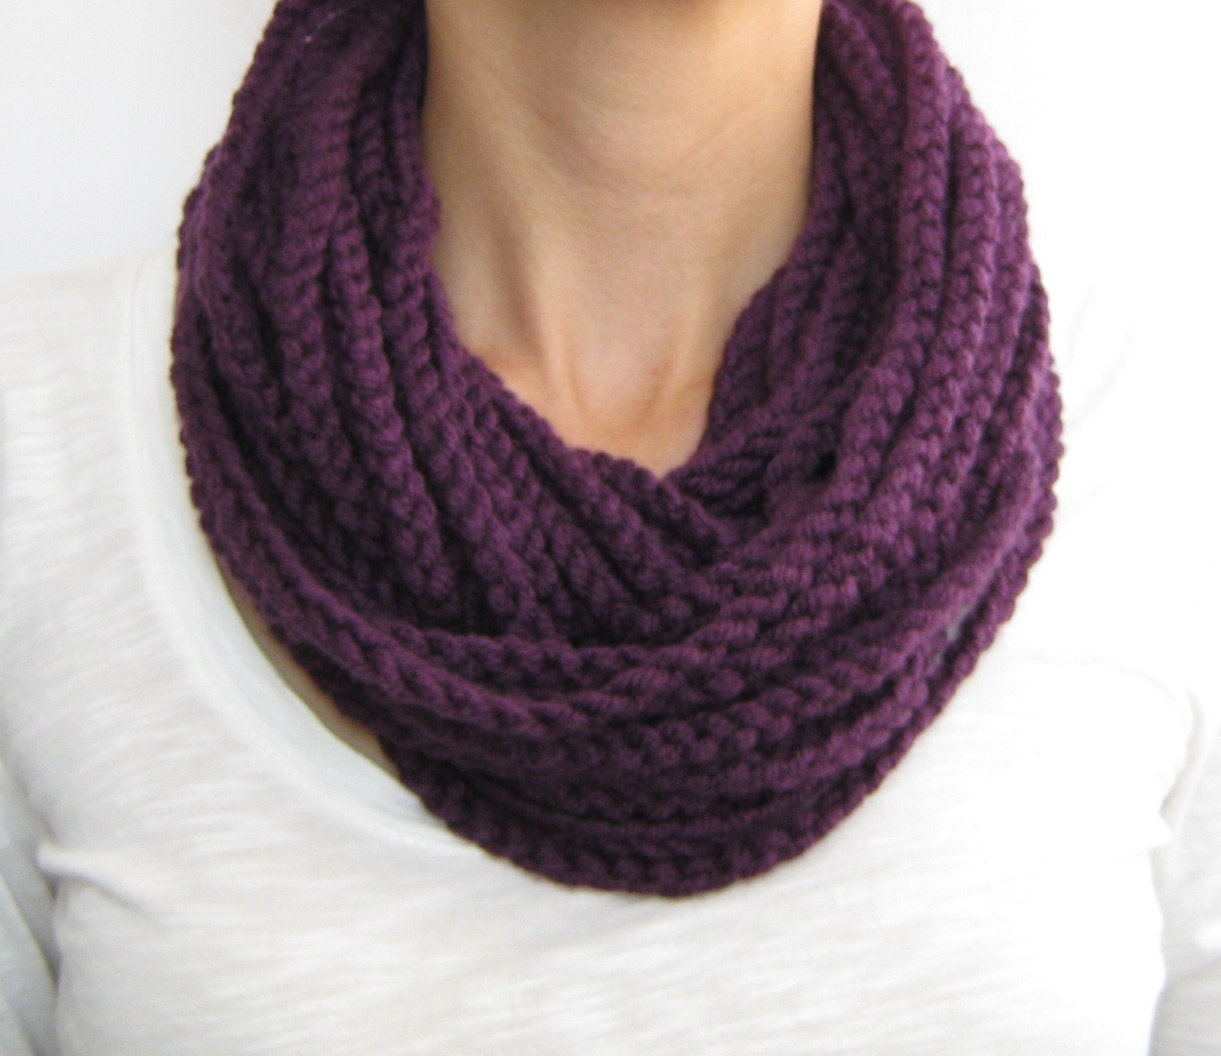 Purple crochet chain scarfcowlneck warmer infinity scarf Cowl Neck Scarves Crochet